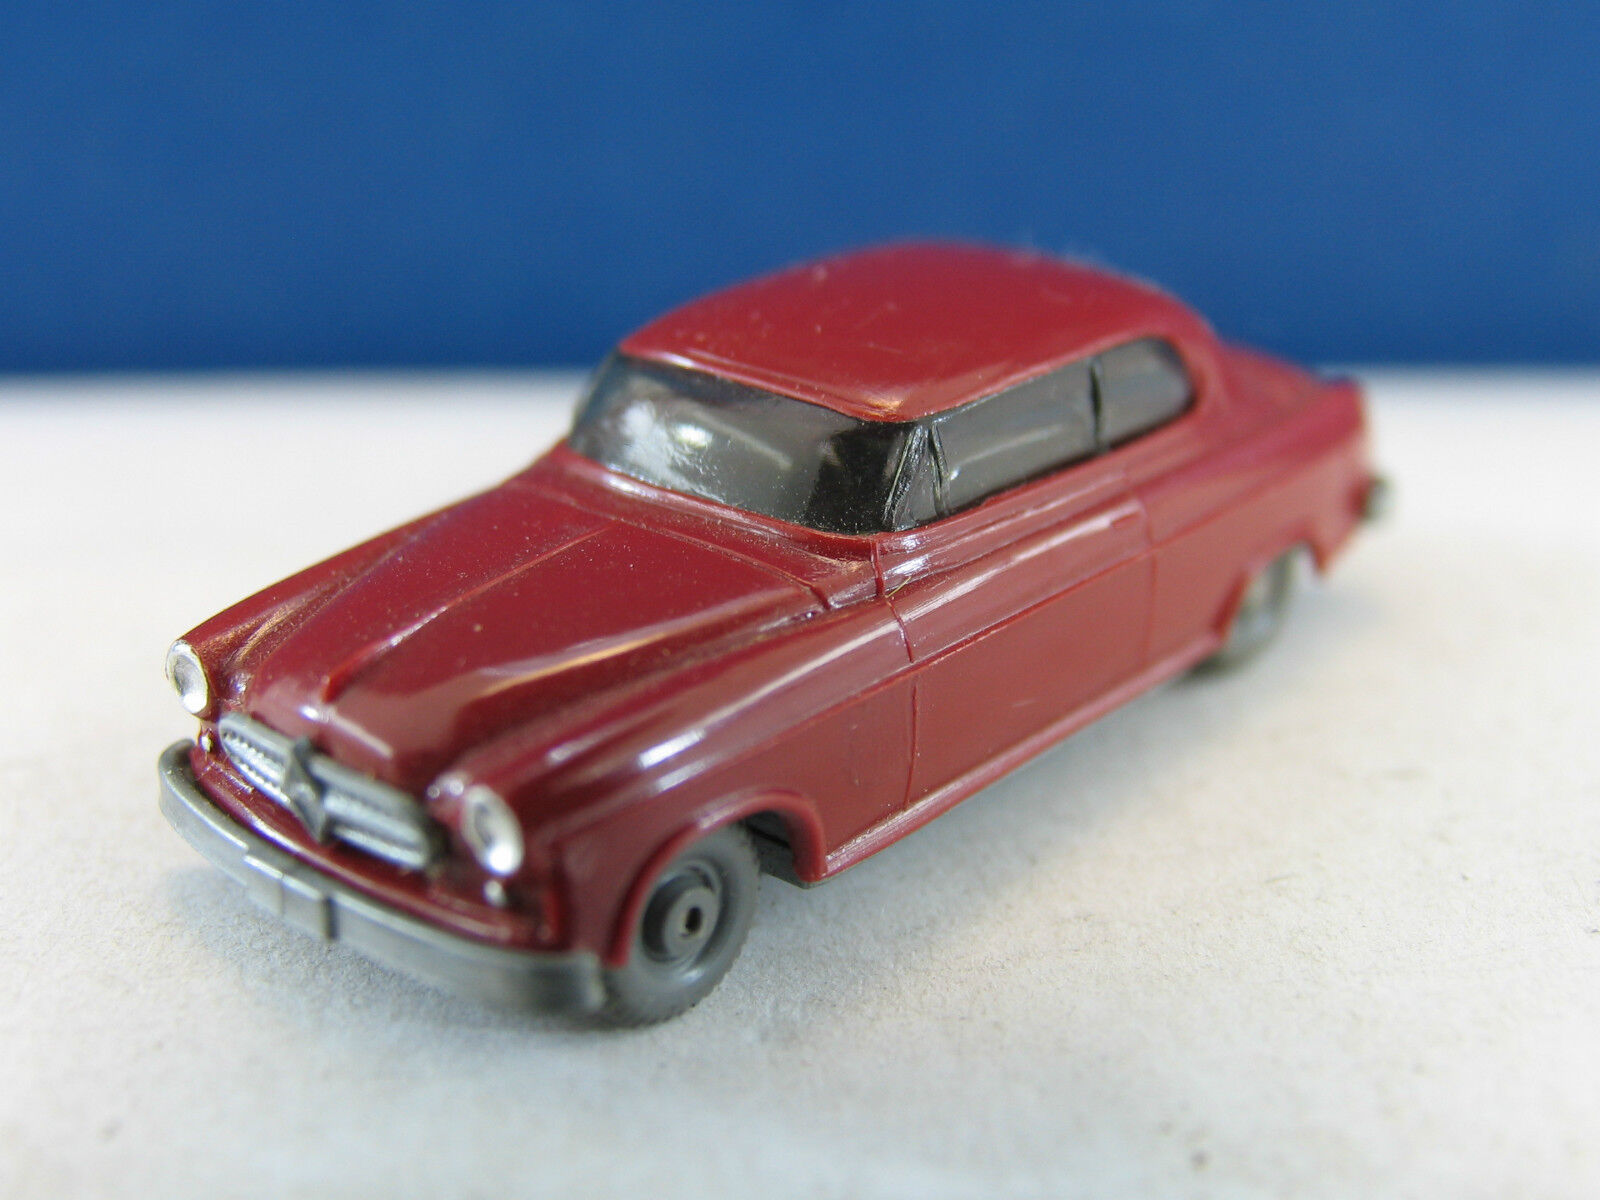 Wiking voiture 185 1 BORGWARD ISABELLA x1238